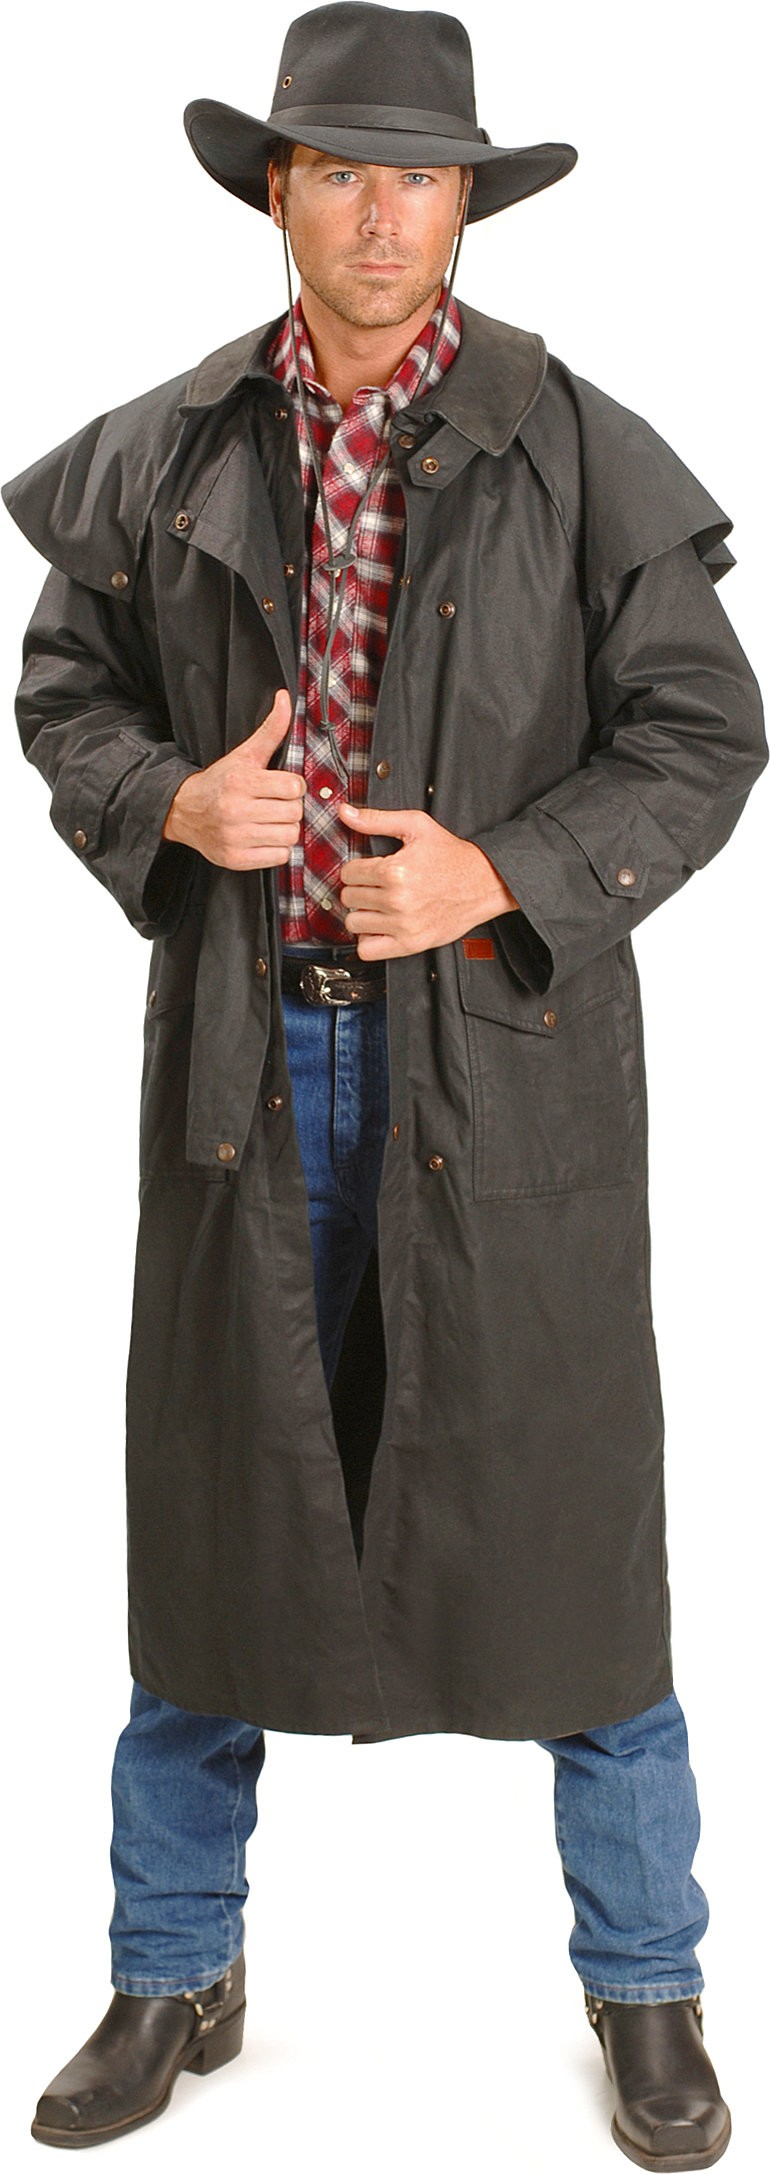 Australian Oilskin Coats Shop the finest selection in Waterproof Australian Oilskin Coats, Oilskin Dusters, Slickers, Oilskin Rain Coats, and Riding Coats online. Each piece of high quality western wear is individually inspected for craftsmanship so you our customers have the best possible experience.